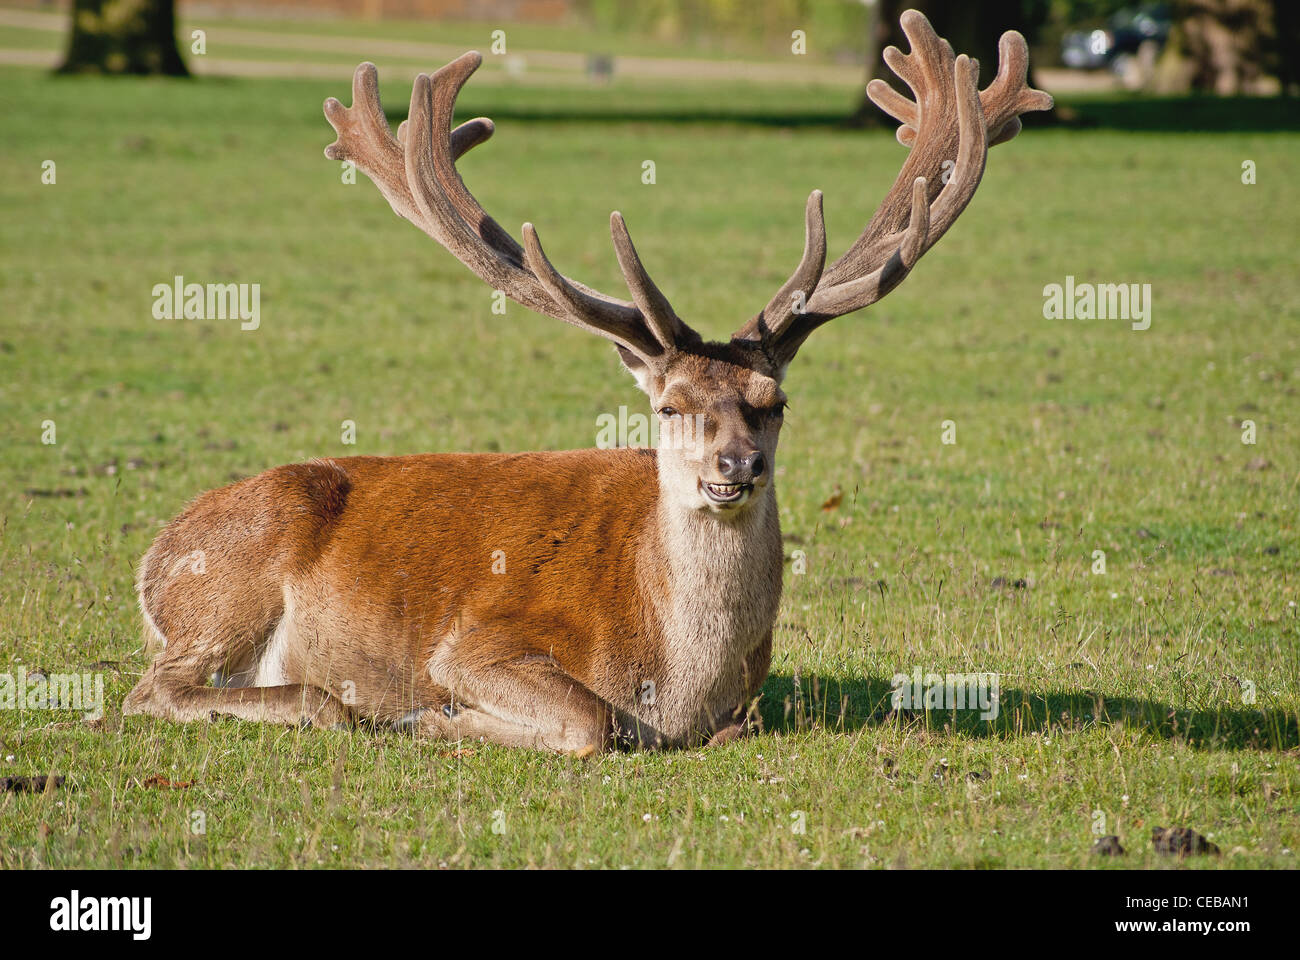 deer laying down stock photos deer laying down stock images alamy